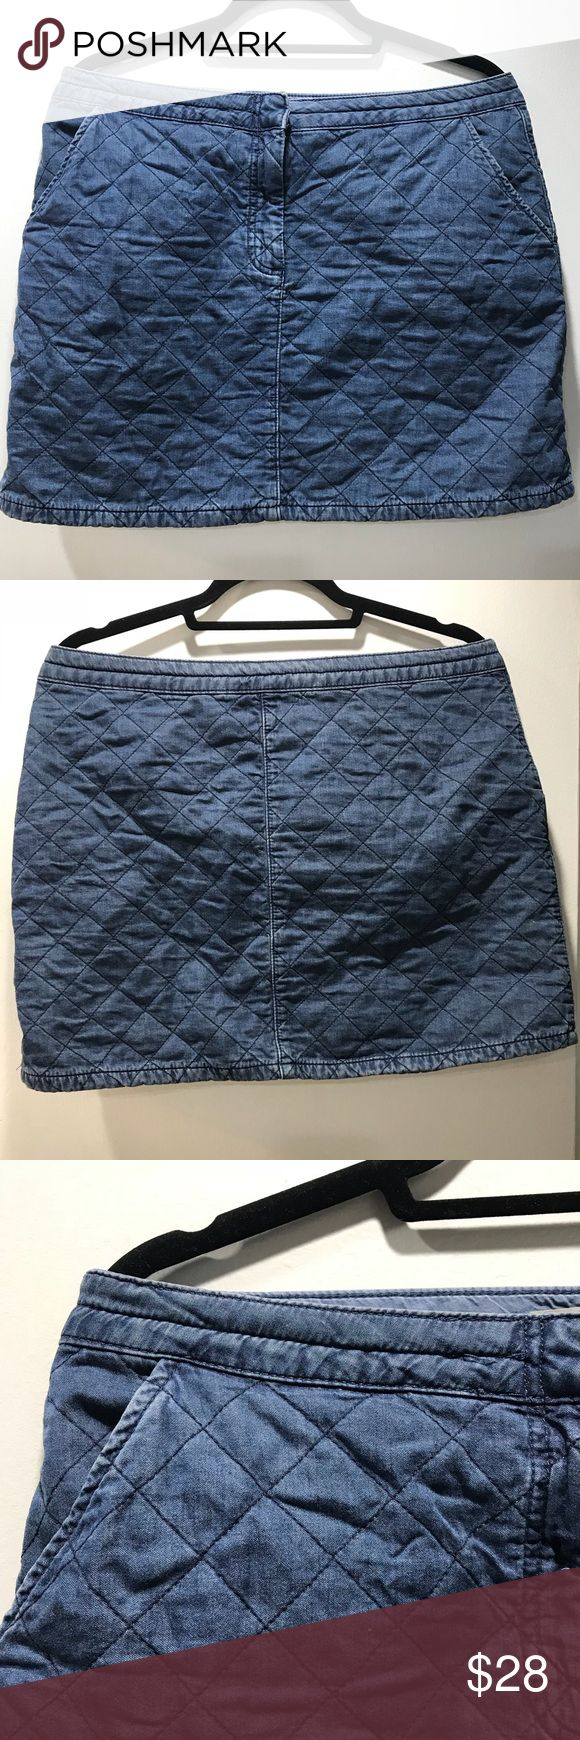 Topshop Moto Quilted Denim Mini Skirt A quilted denim mini skirt that looks great with tights and a sweater for the winter or just by itself and a t-shirt for spring! It is 100% cotton and machine washable. Topshop Skirts Mini